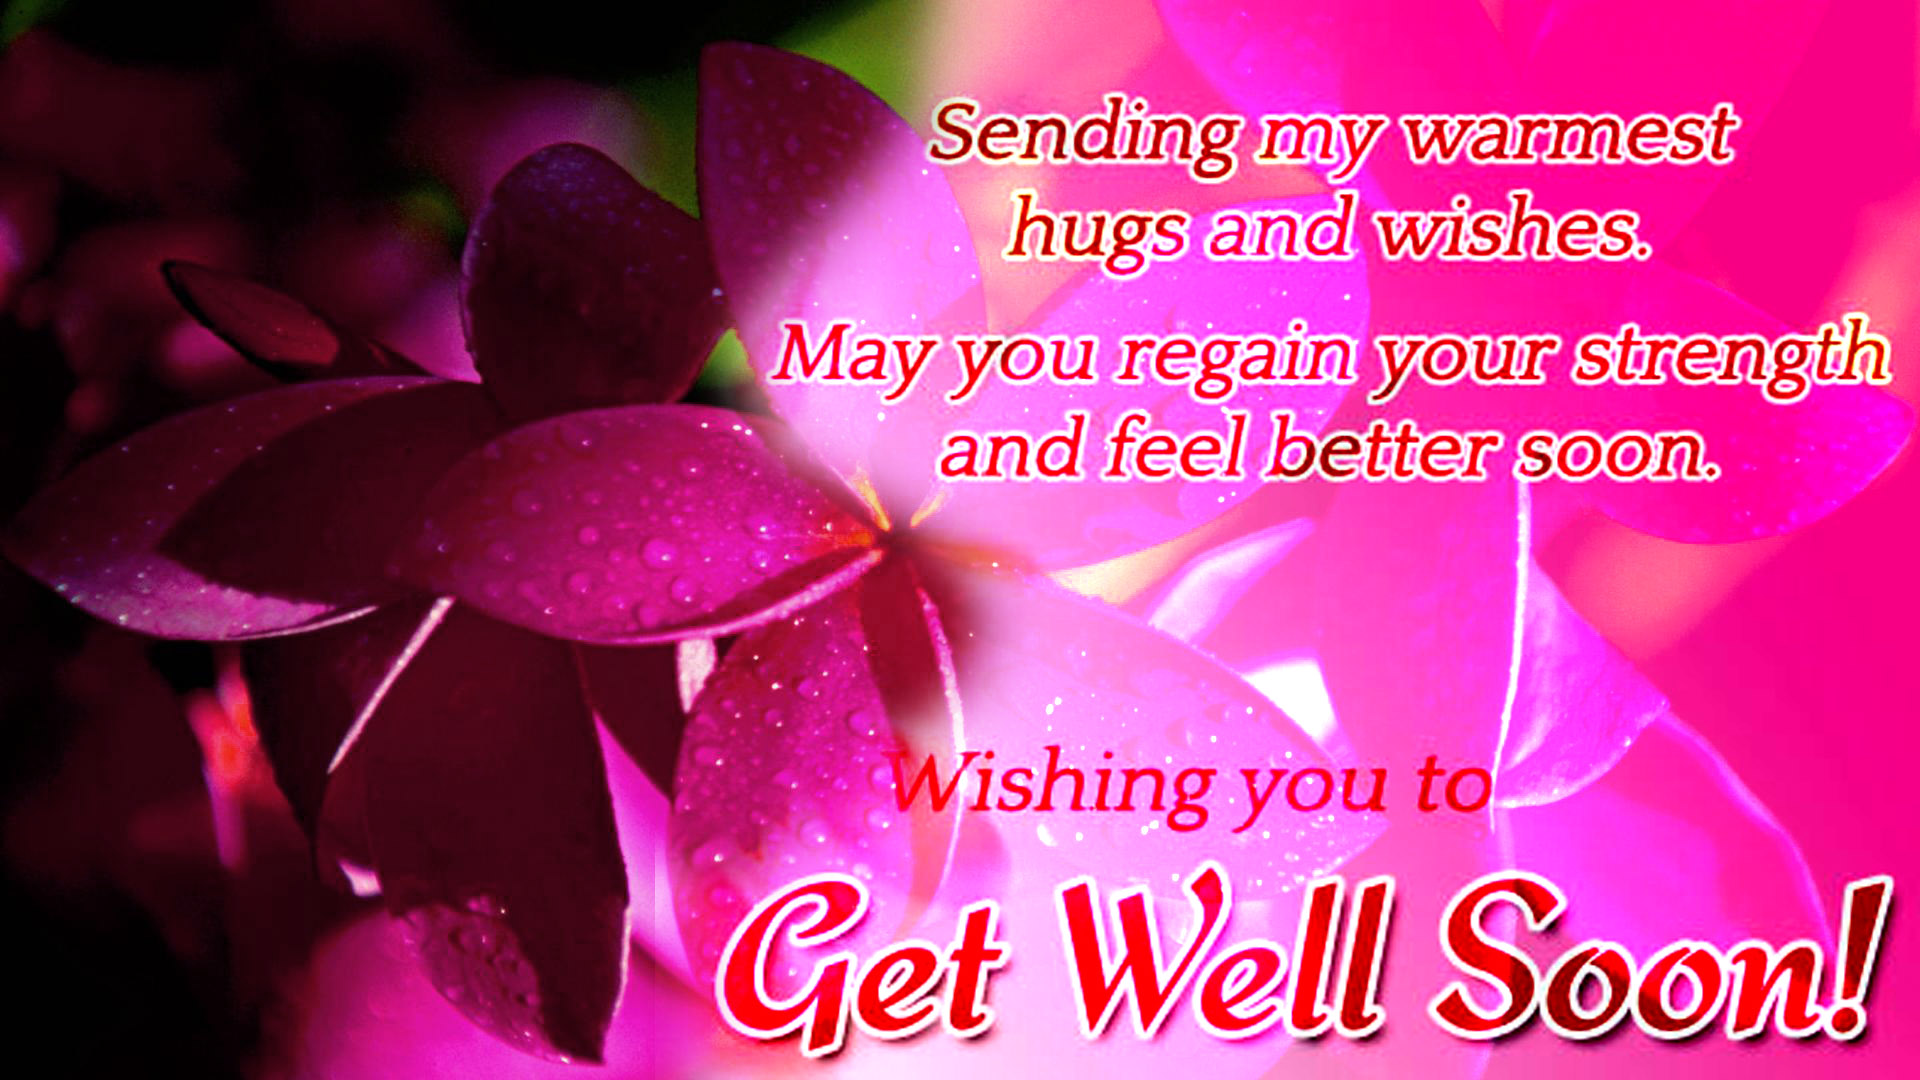 Get well soon better recovery poems wish you feel better soon